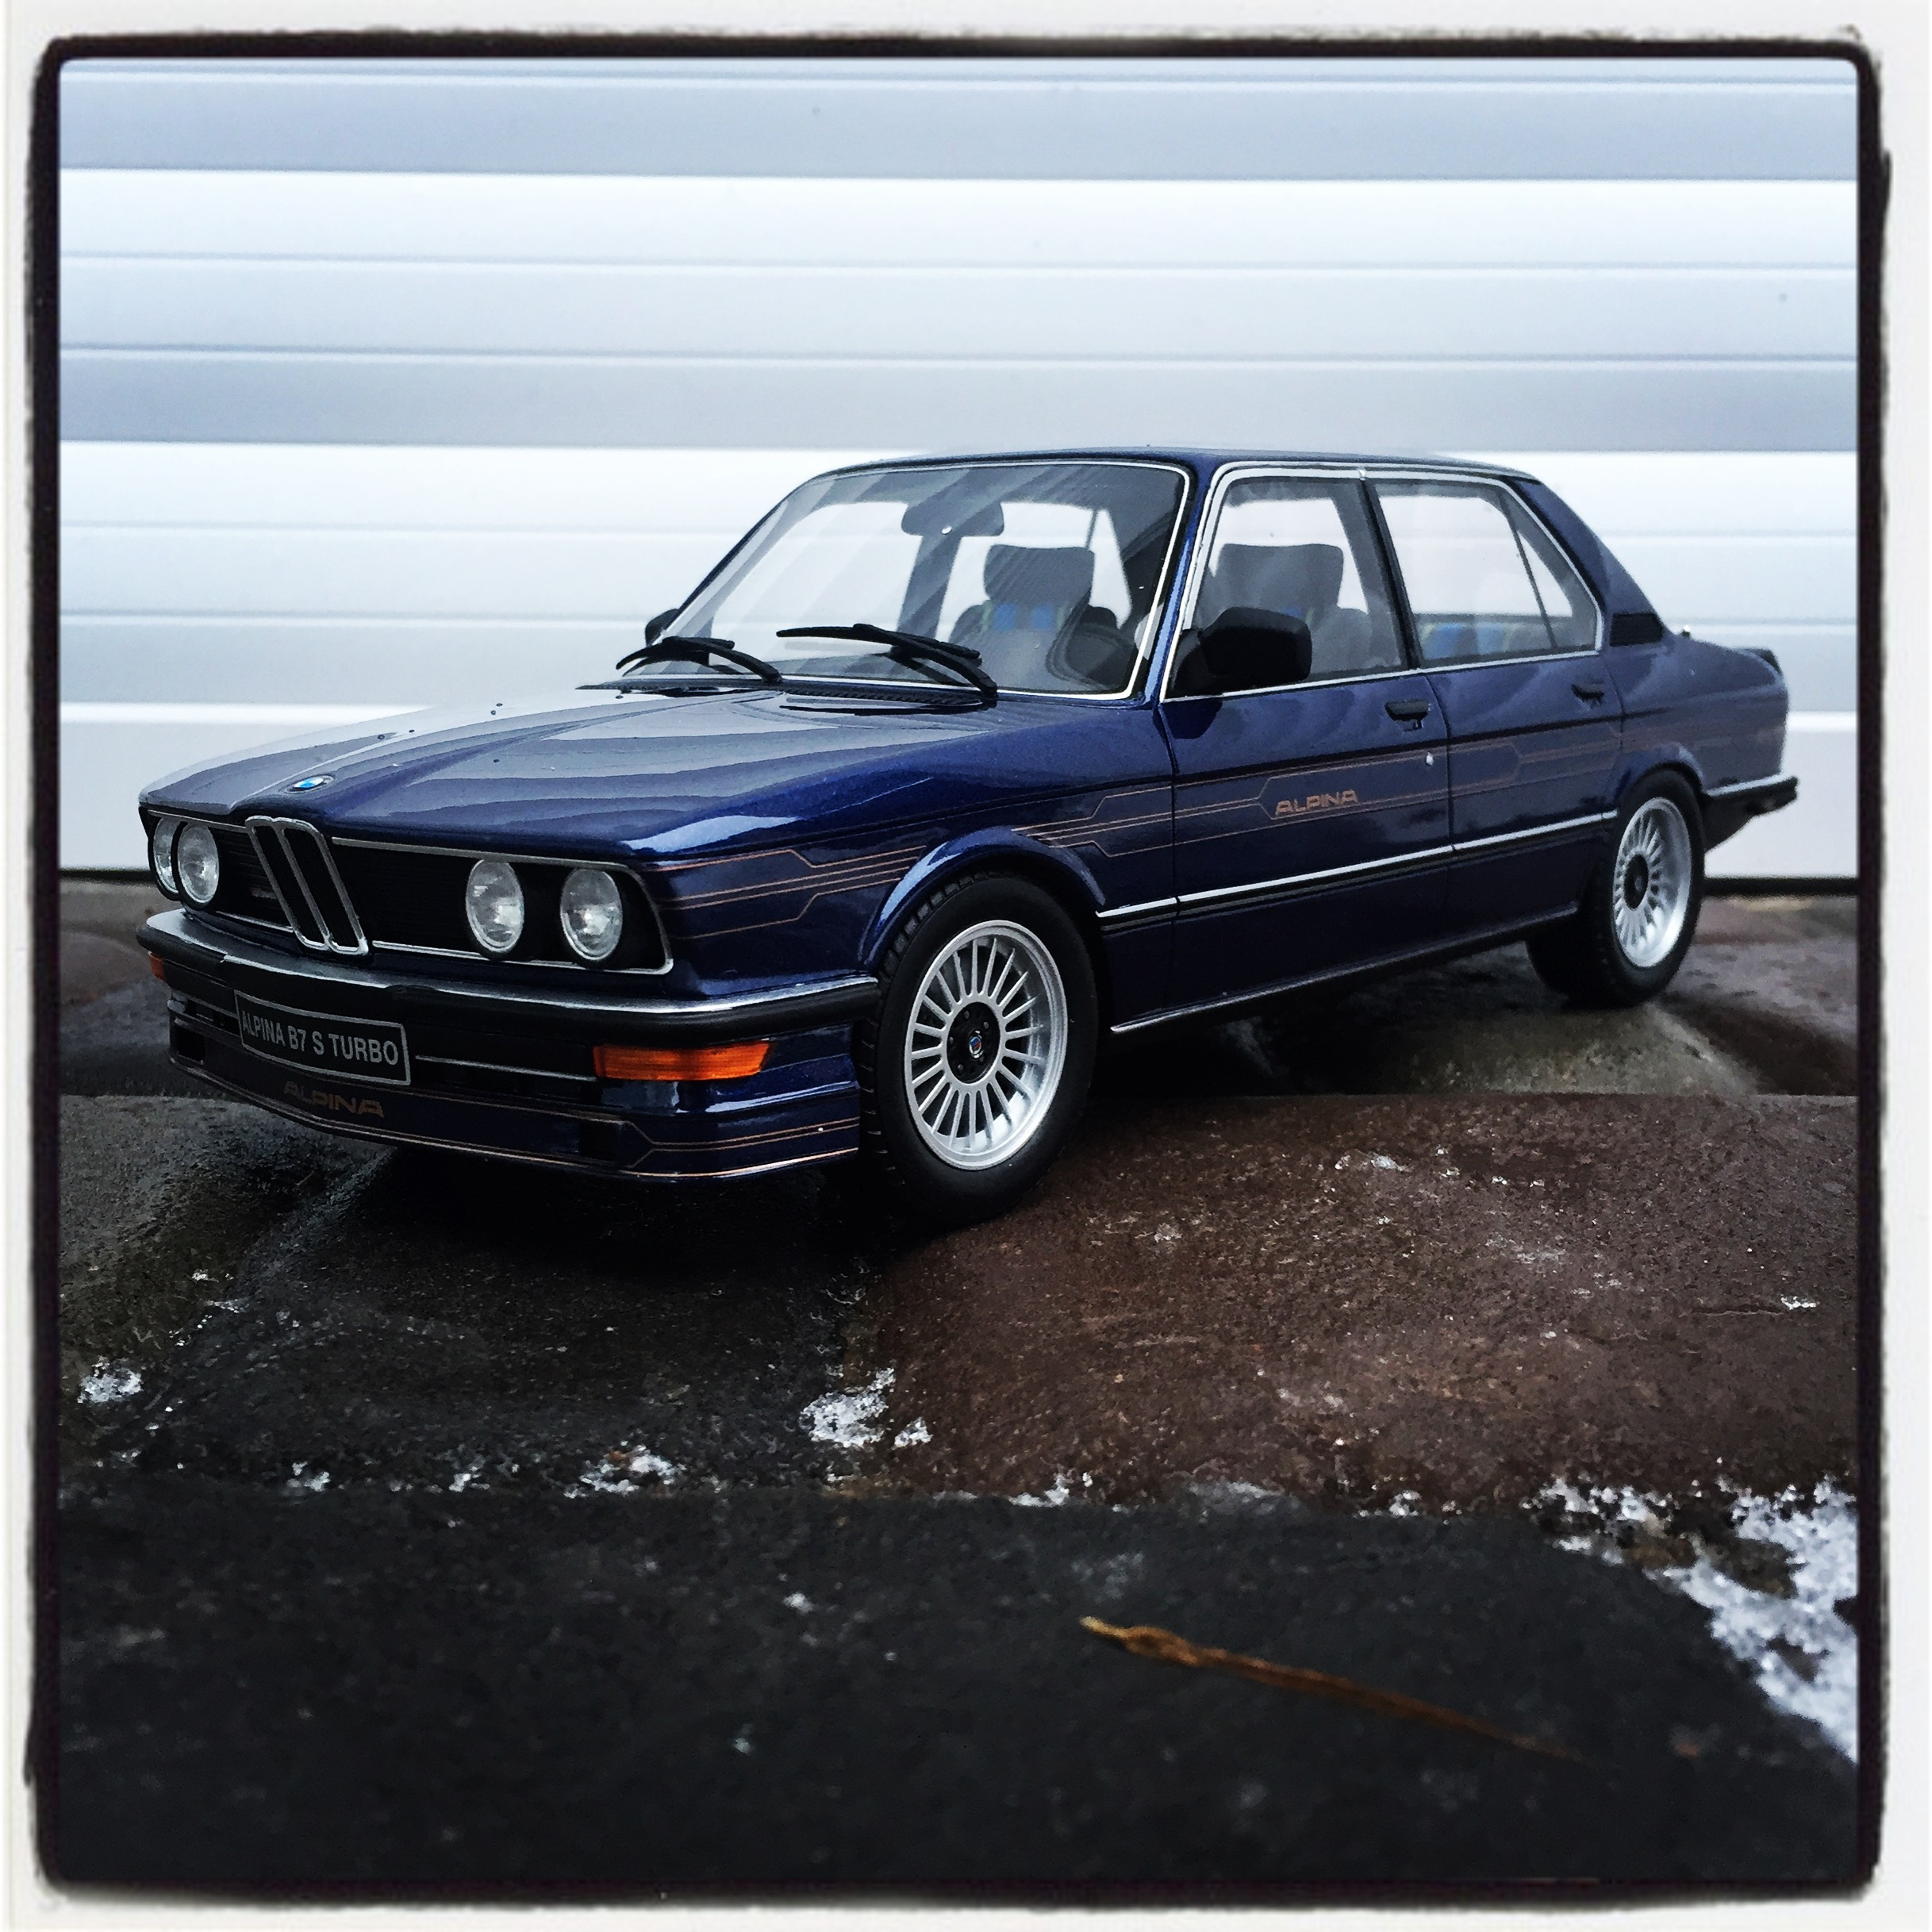 Alpina B7 S turbo (E12) 1981, dark blue, le 645 of 2,000pcs. (otto)